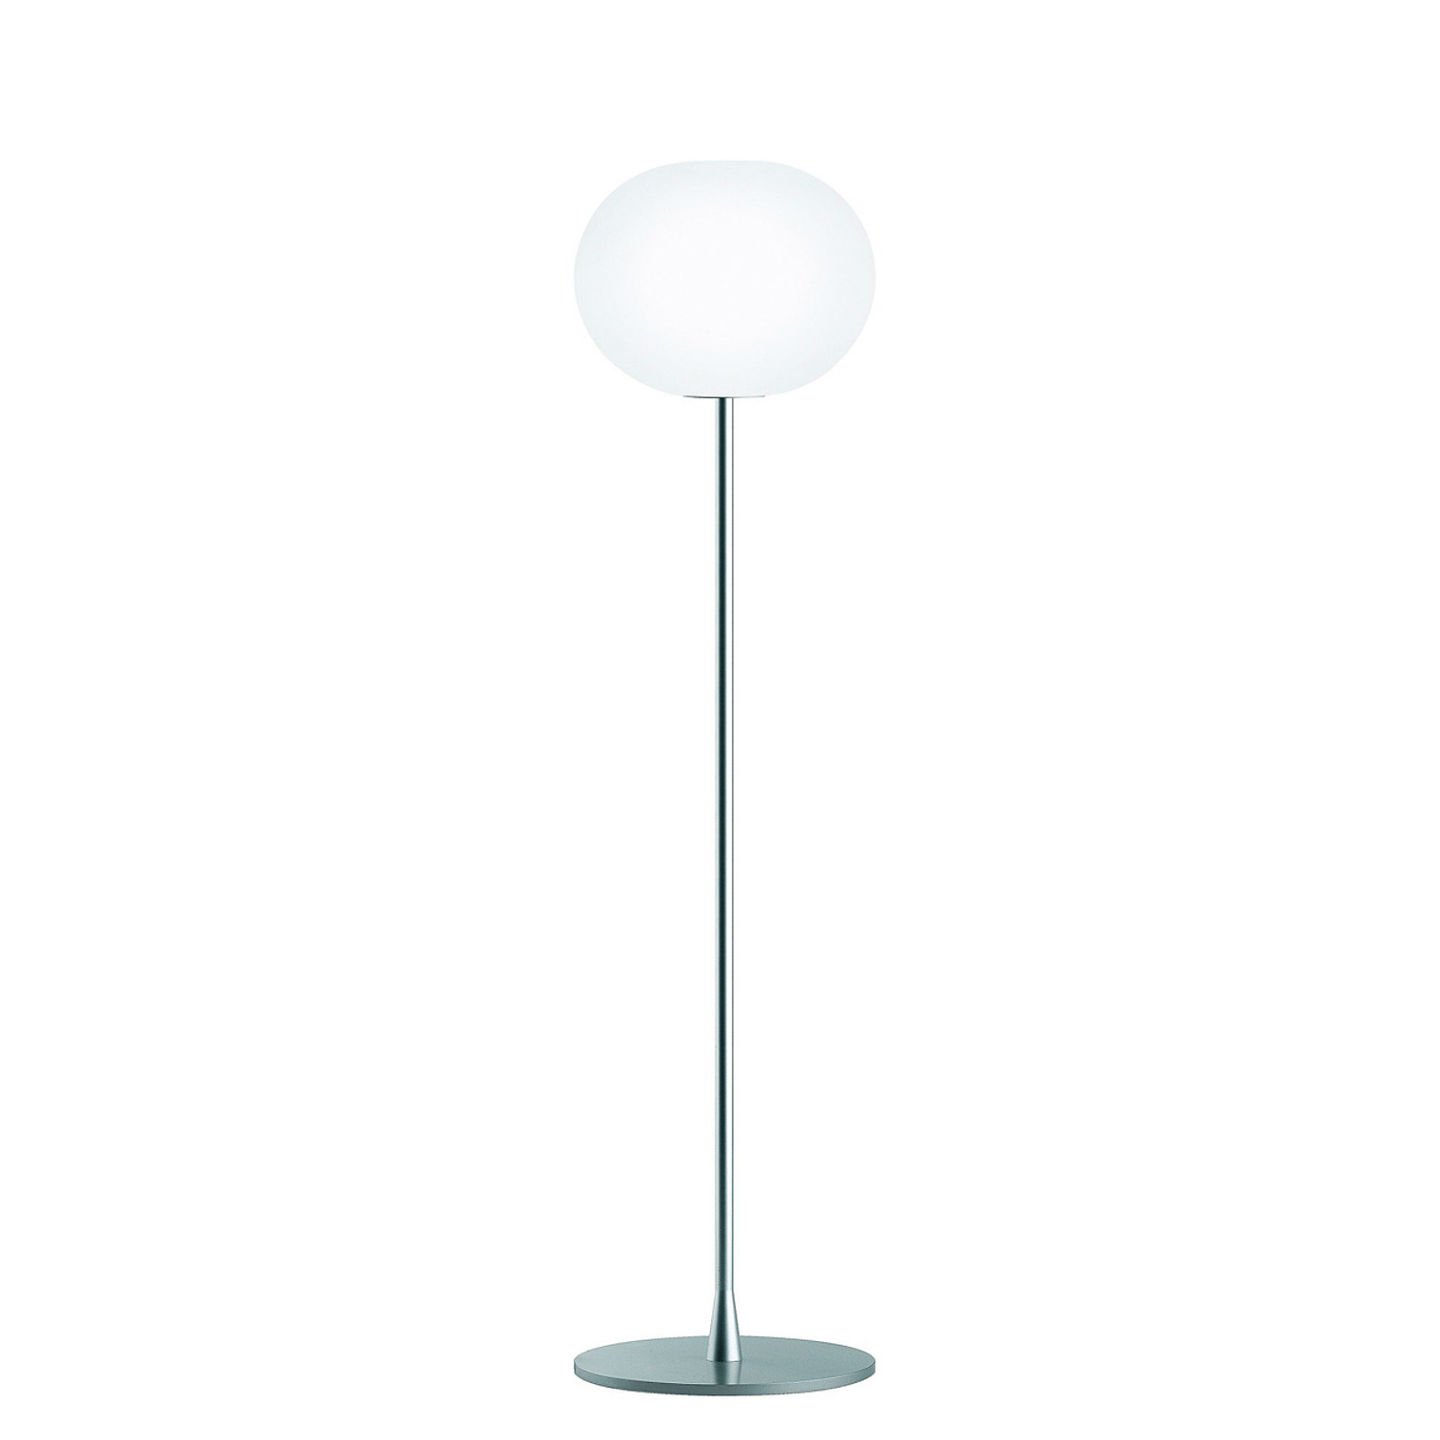 Glo Ball F1 lámpara de Pie 135cm E27 150W - Plata mate